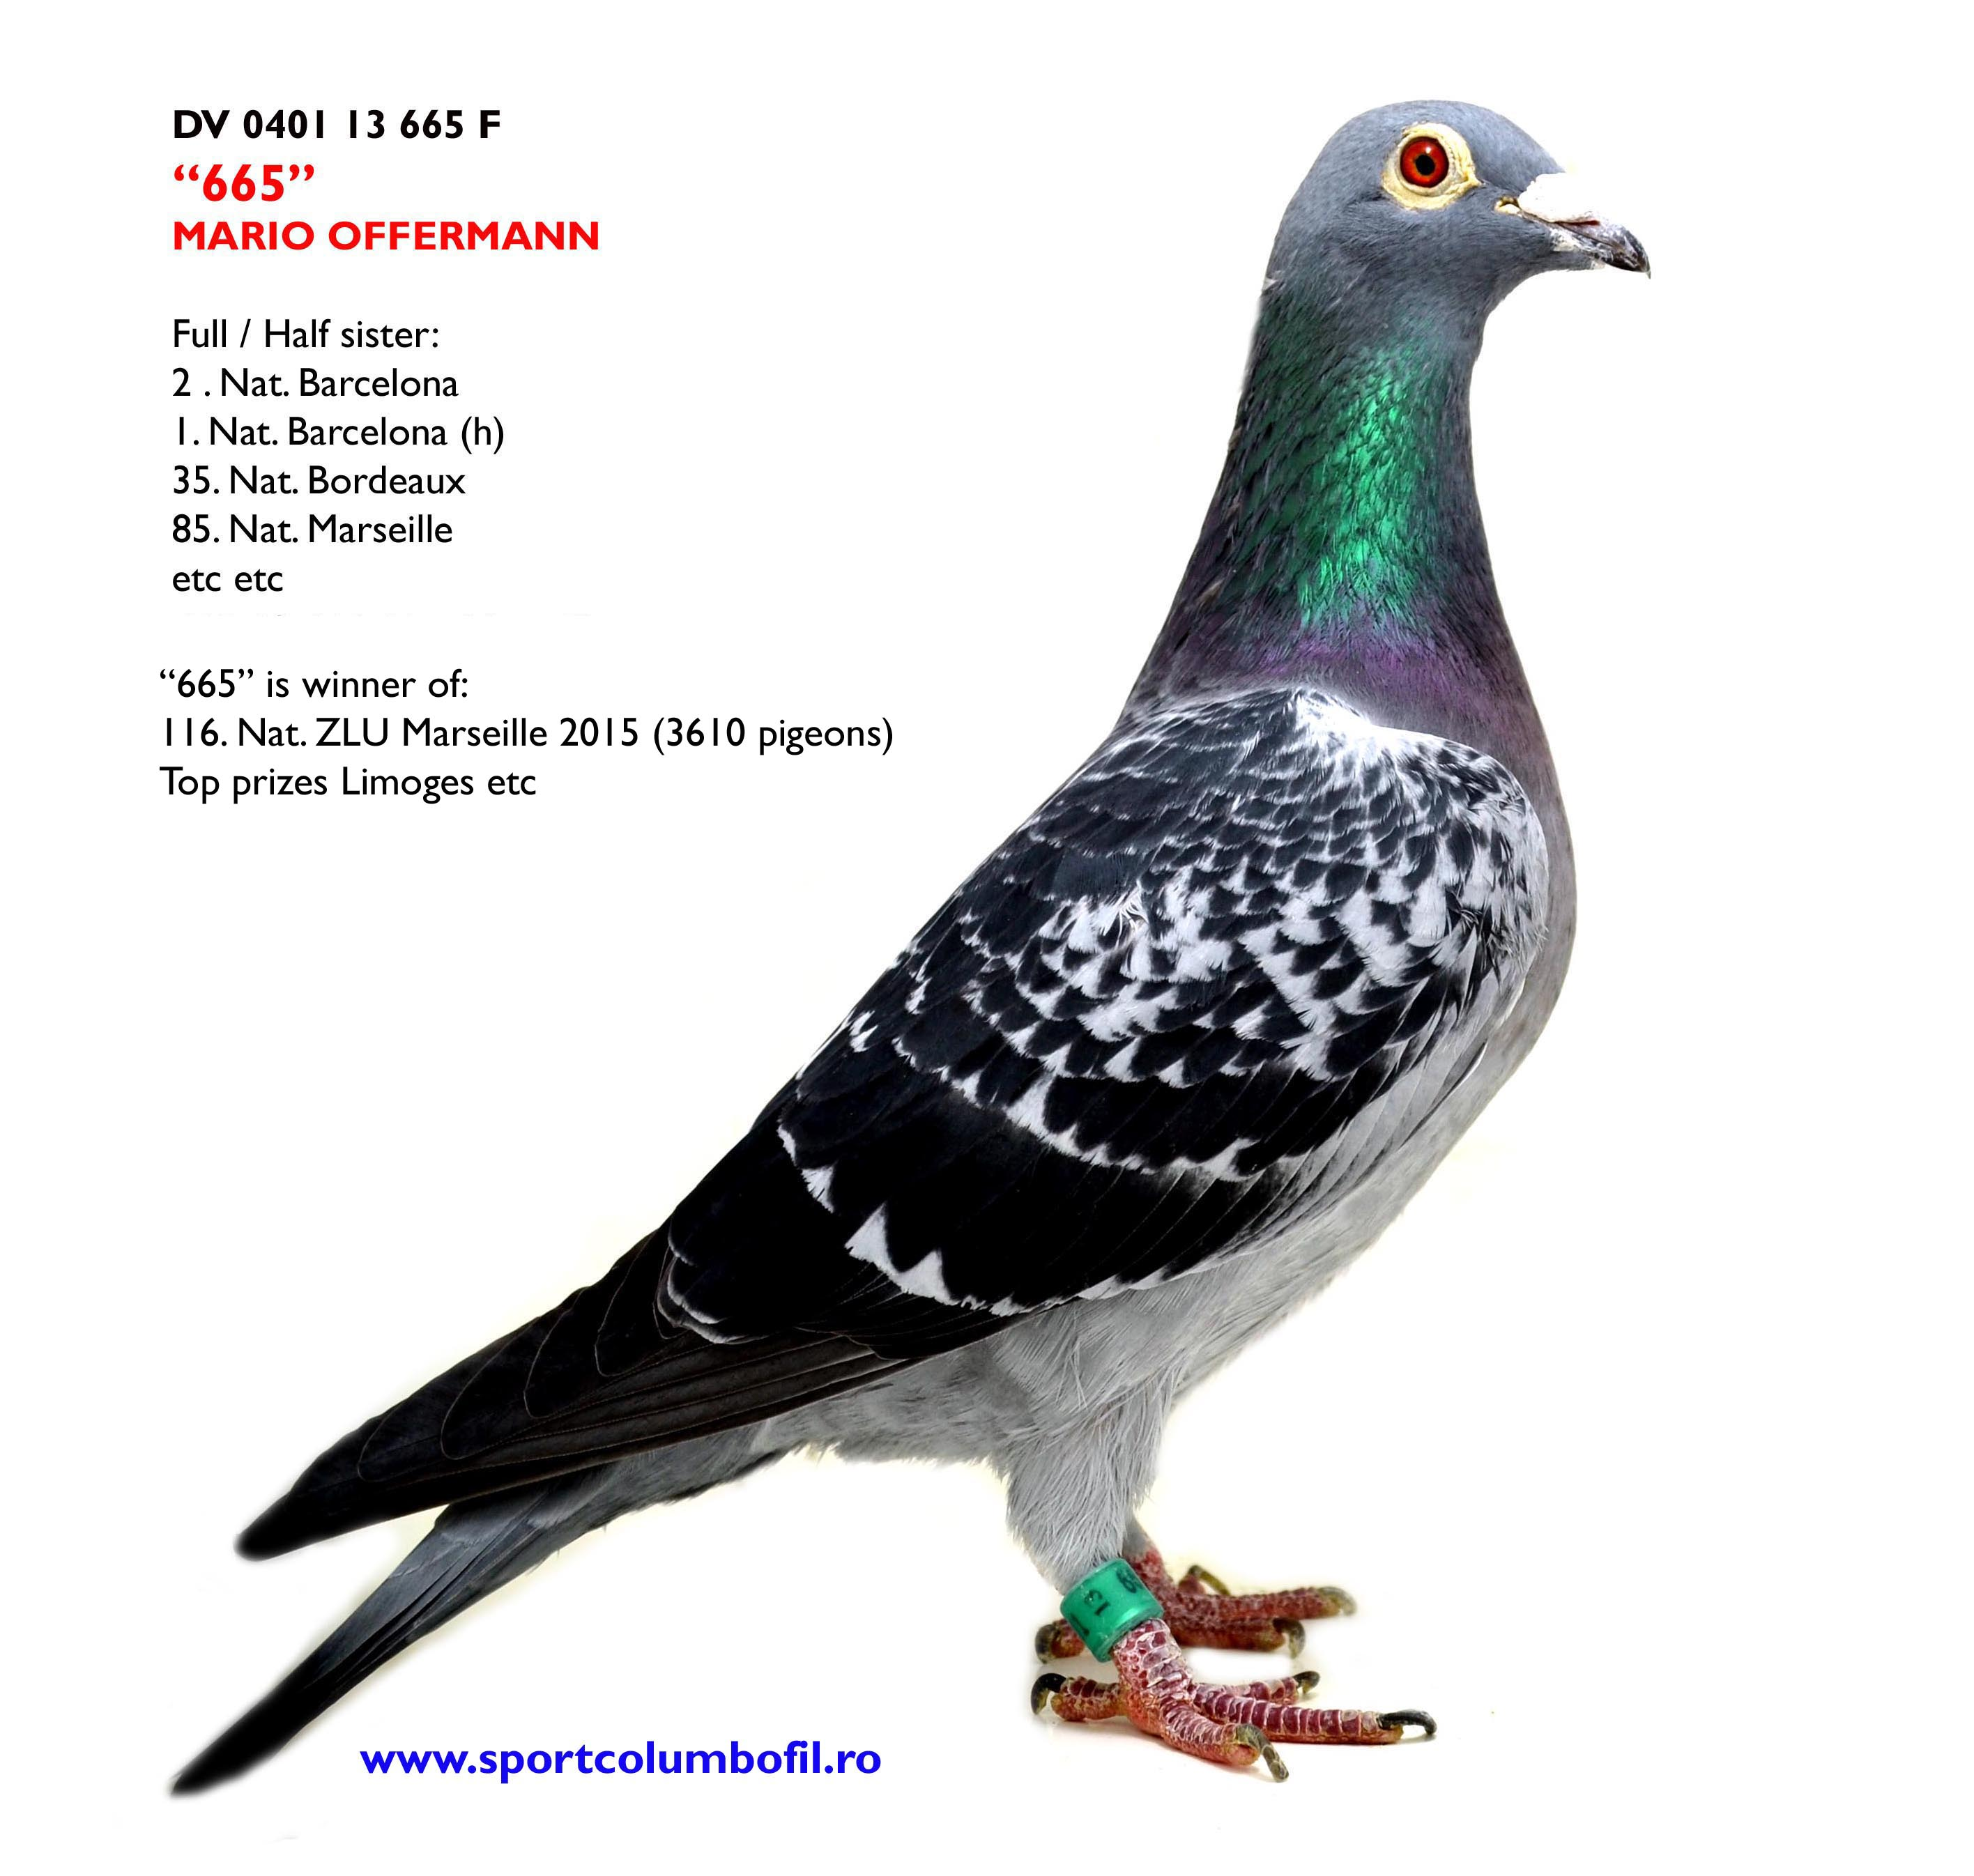 DV 401 665 F - top racing hen; 116 Nat Marseille etc; full sister 1 Nat Barcelona (h)